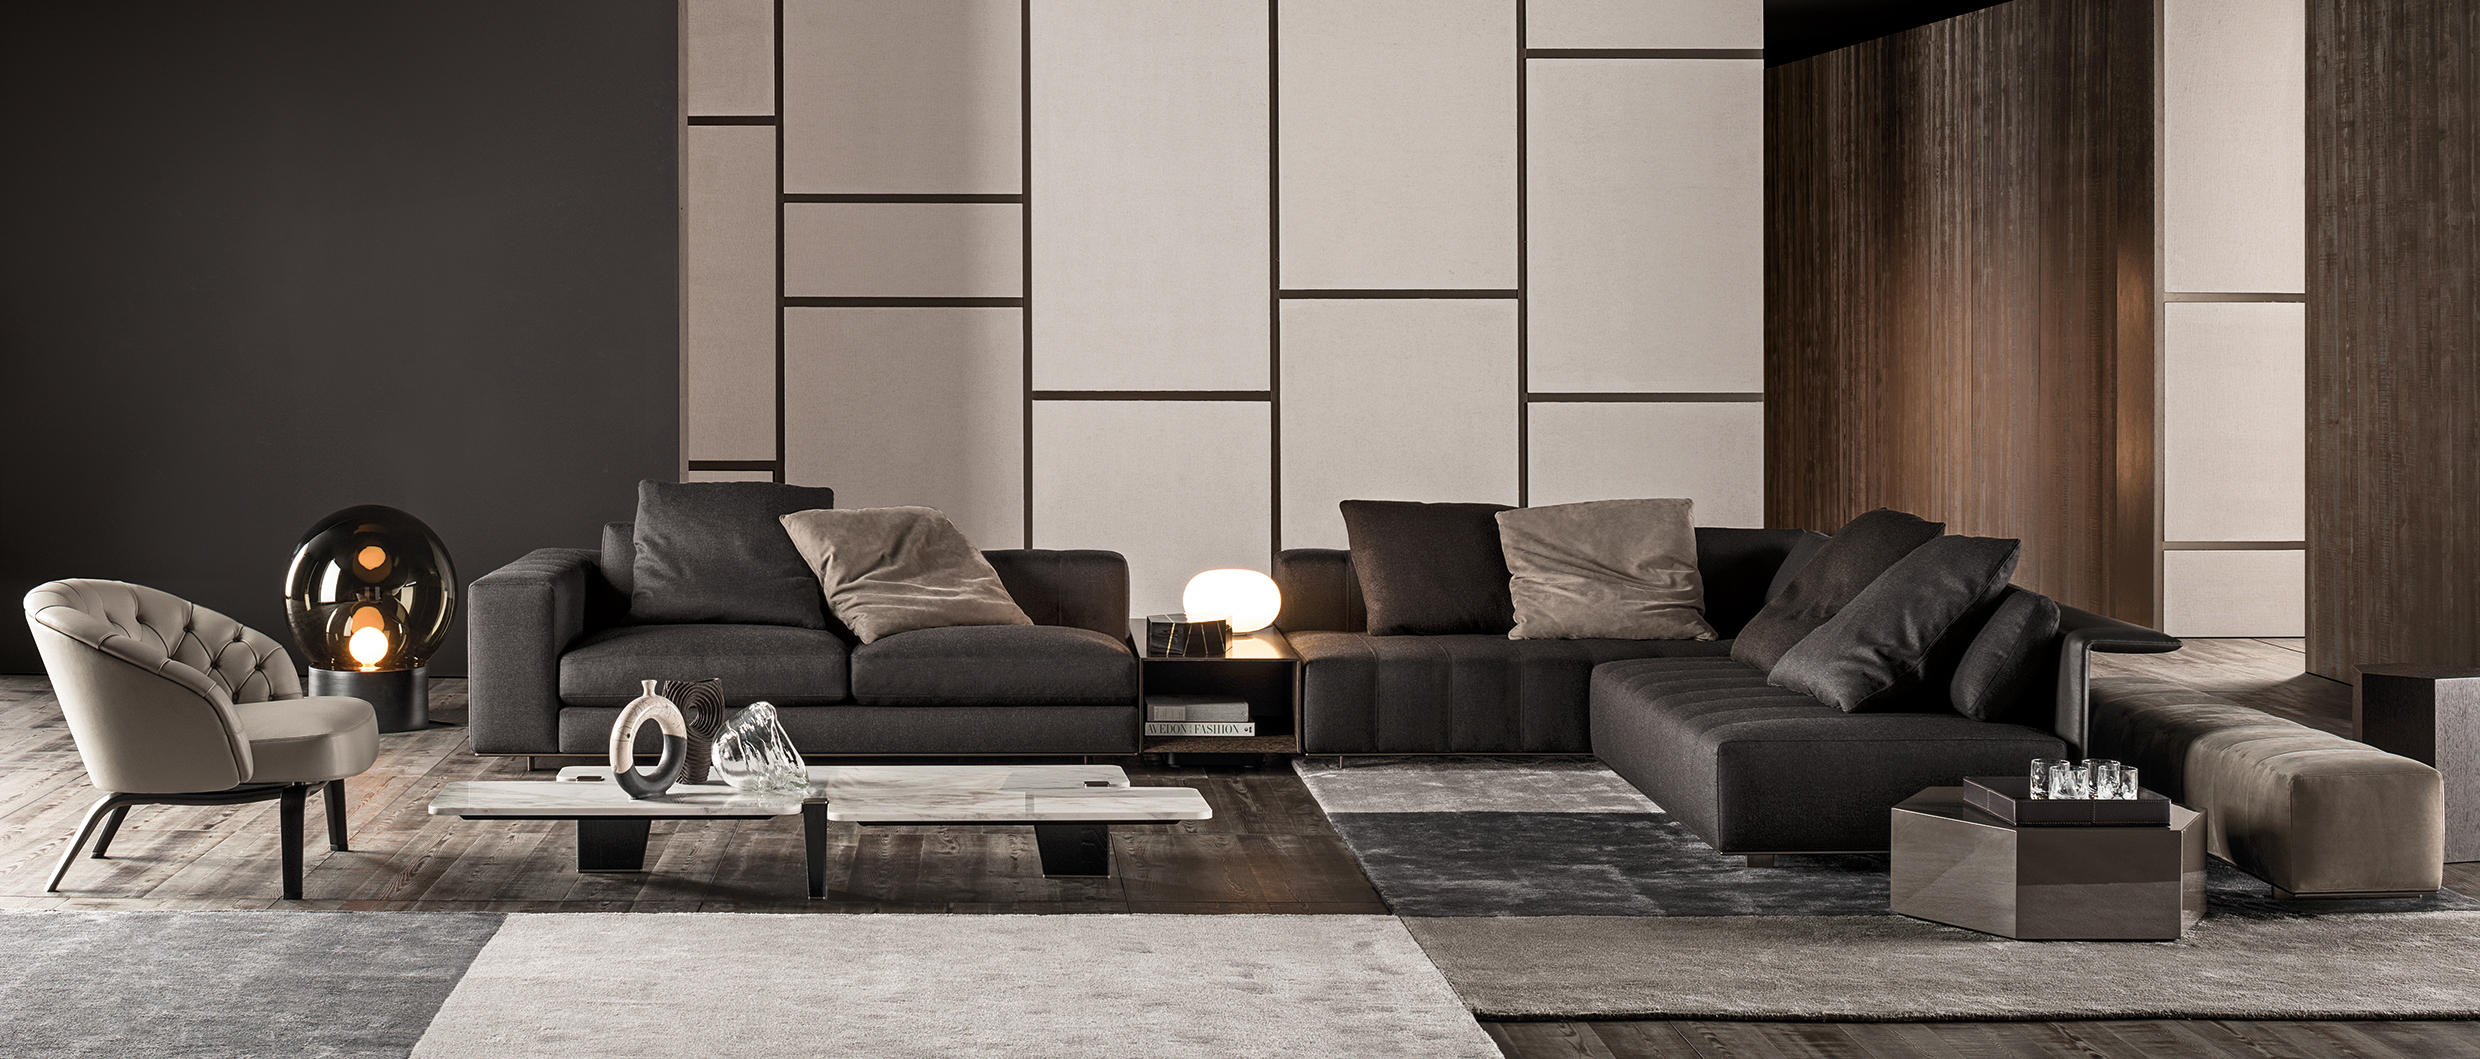 FREEMAN DUVET SOFA Lounge sofas from Minotti